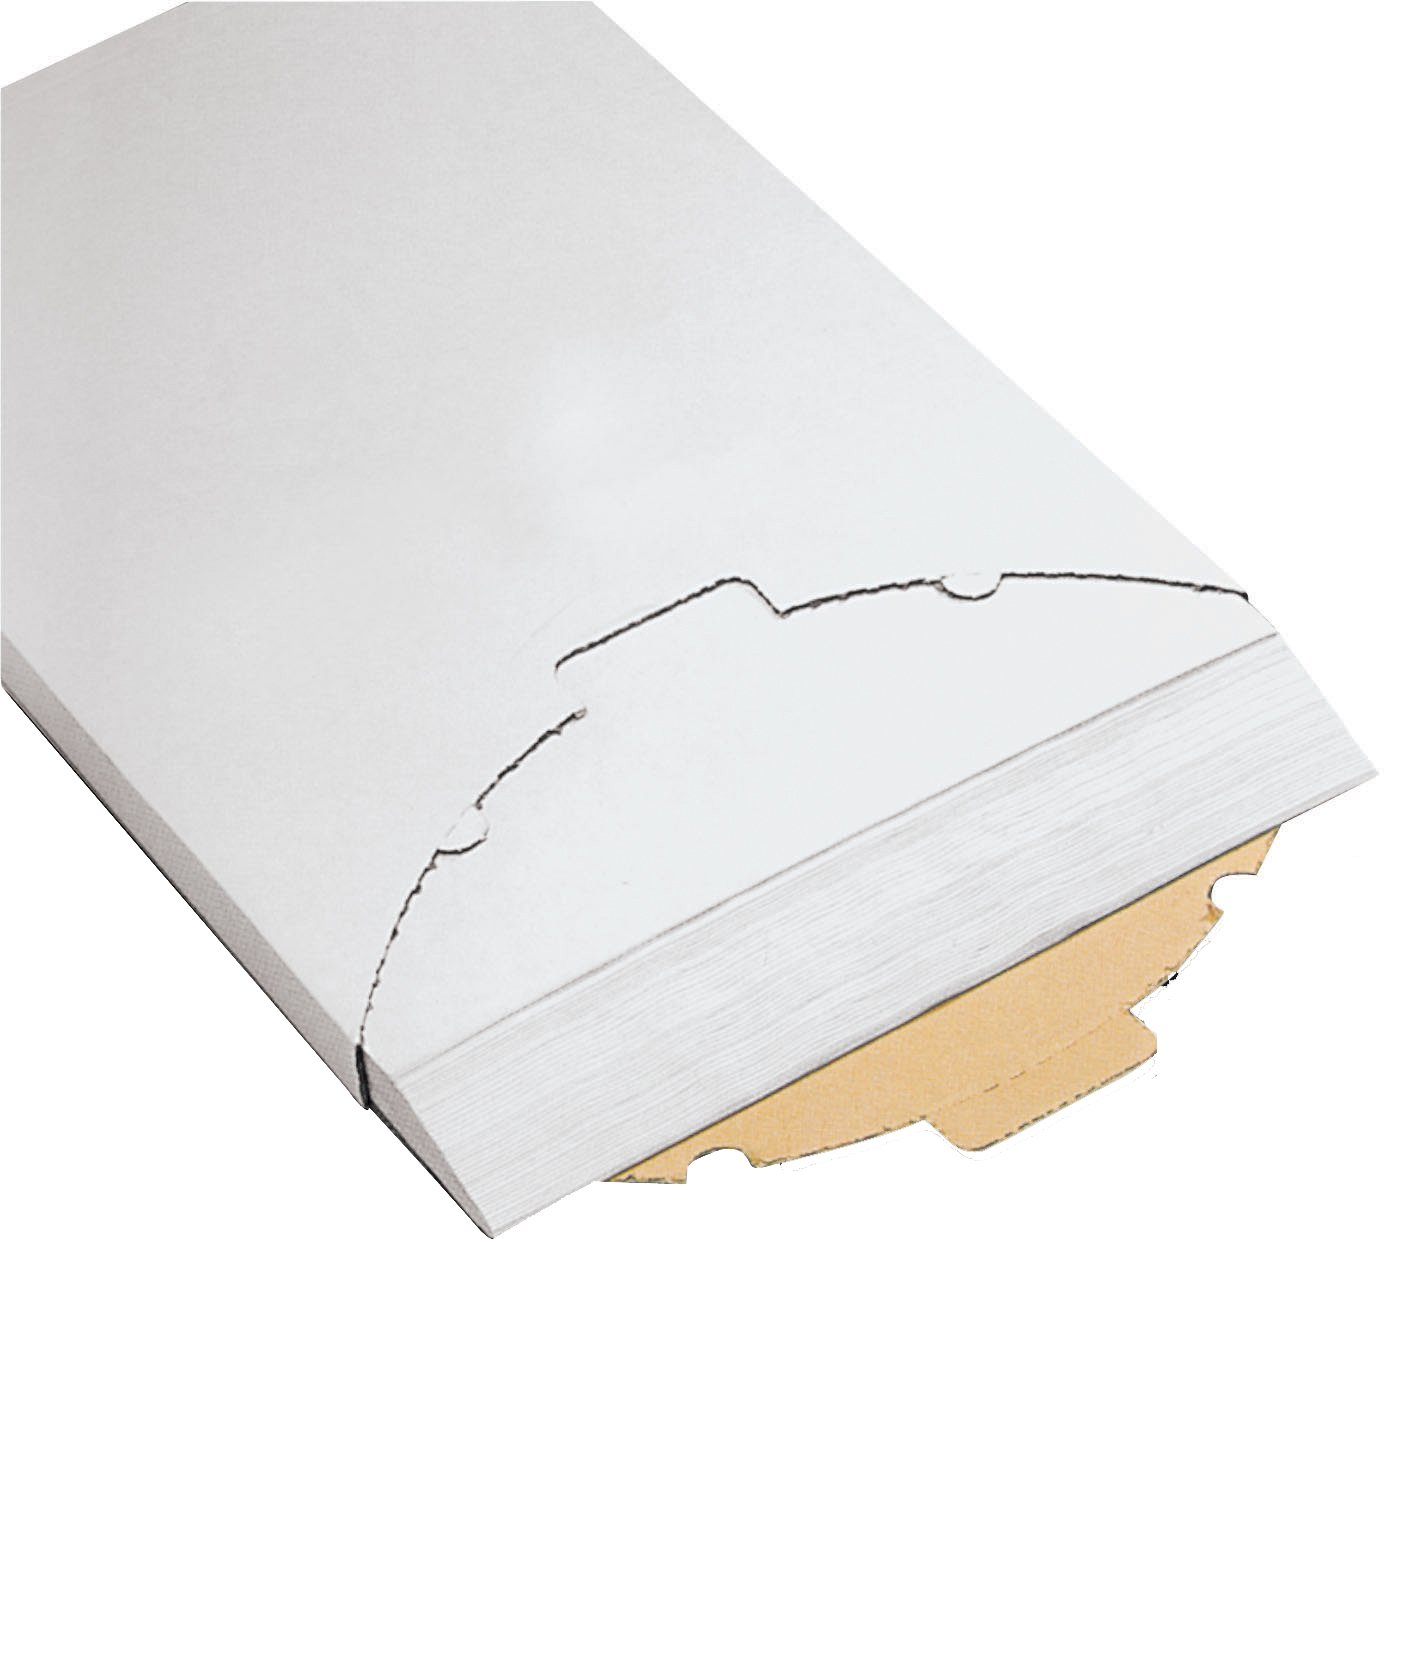 Paderno World Cuisine 12 3/4 Inch by 20 7/8 Inch Sheets of Silicone Coated Parchment Paper, Pack of 500